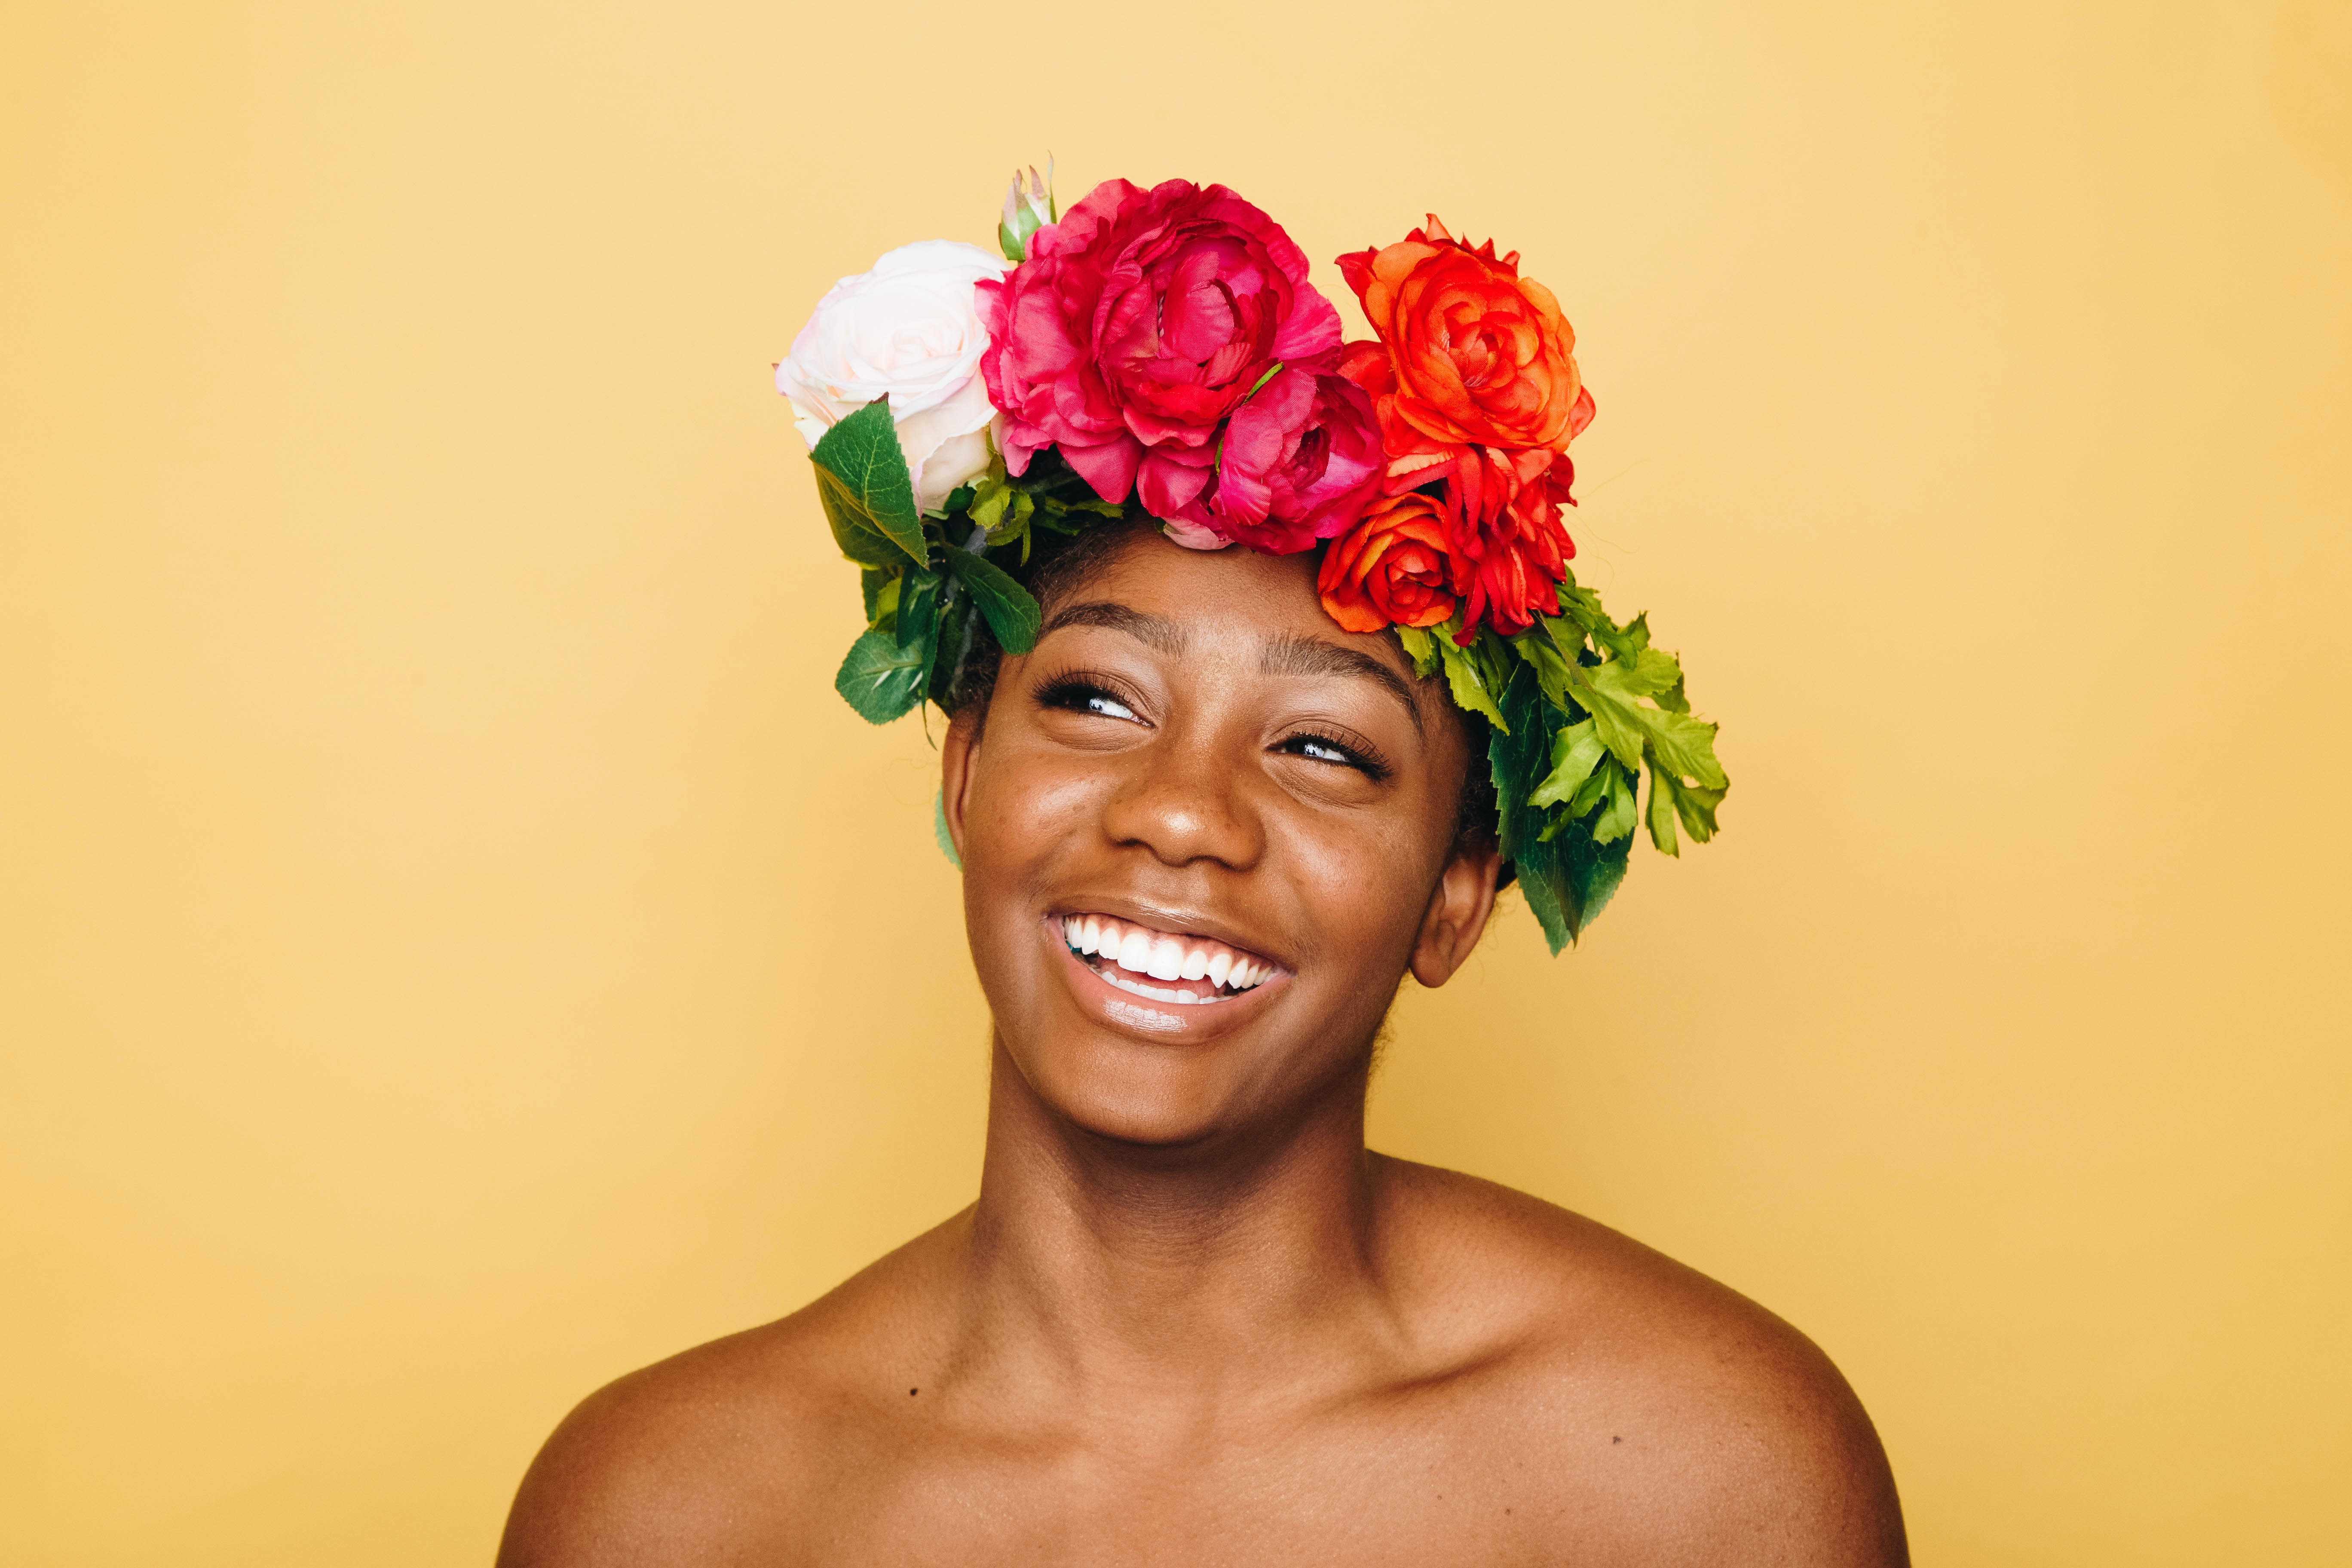 woman smiling wearing flower crown